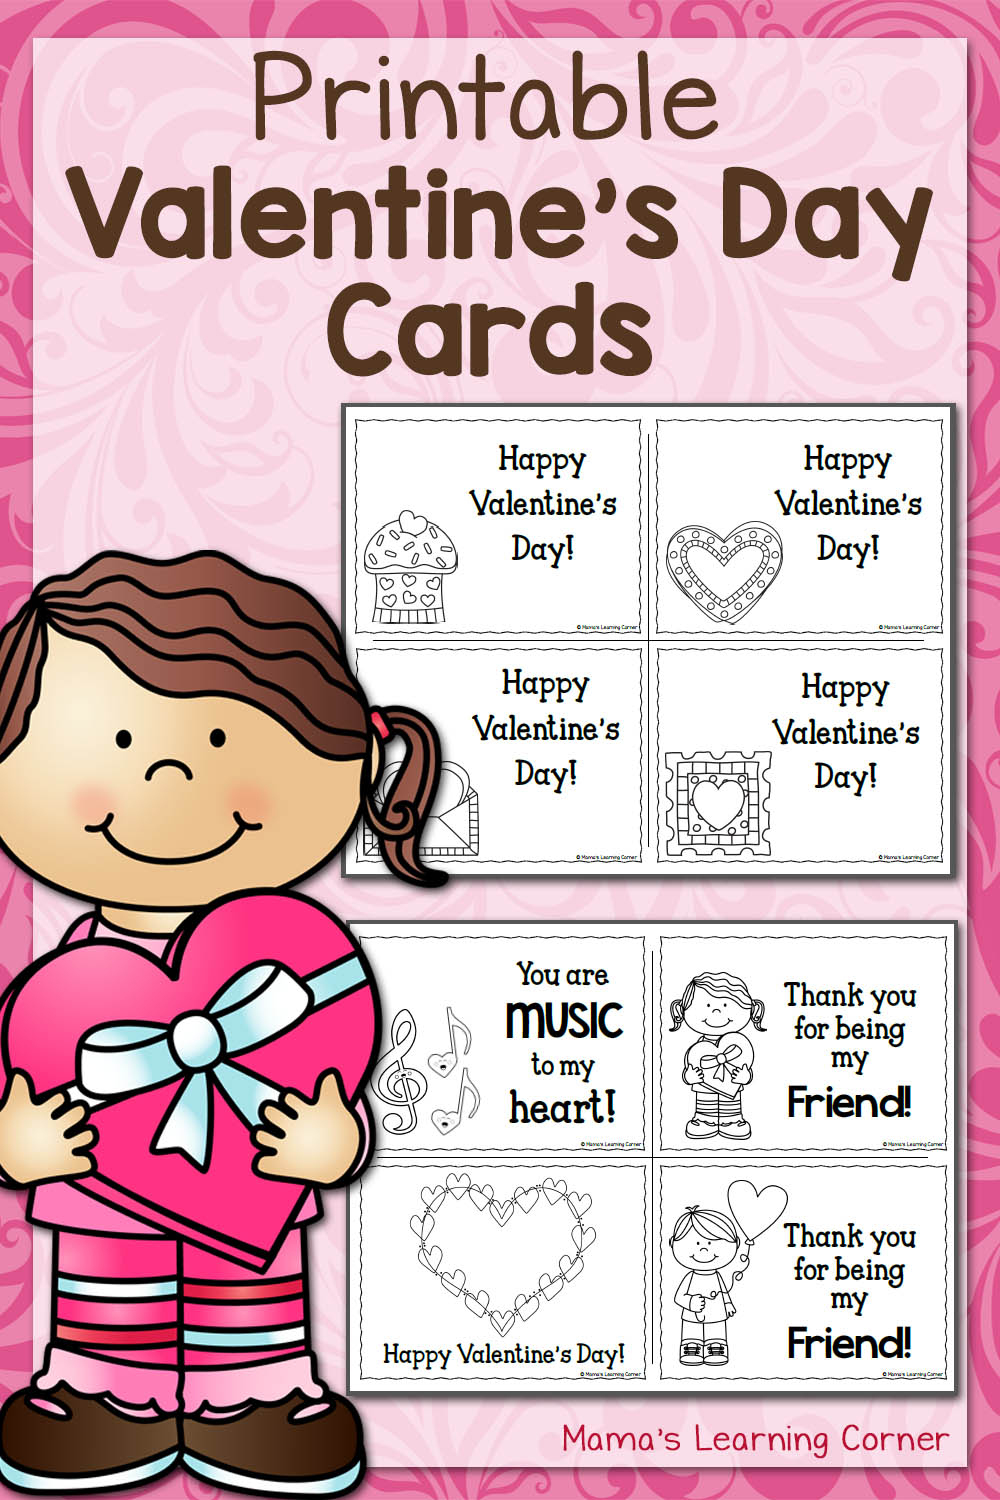 Printable Valentine's Day Cards - Mamas Learning Corner - Free Printable Childrens Valentines Day Cards